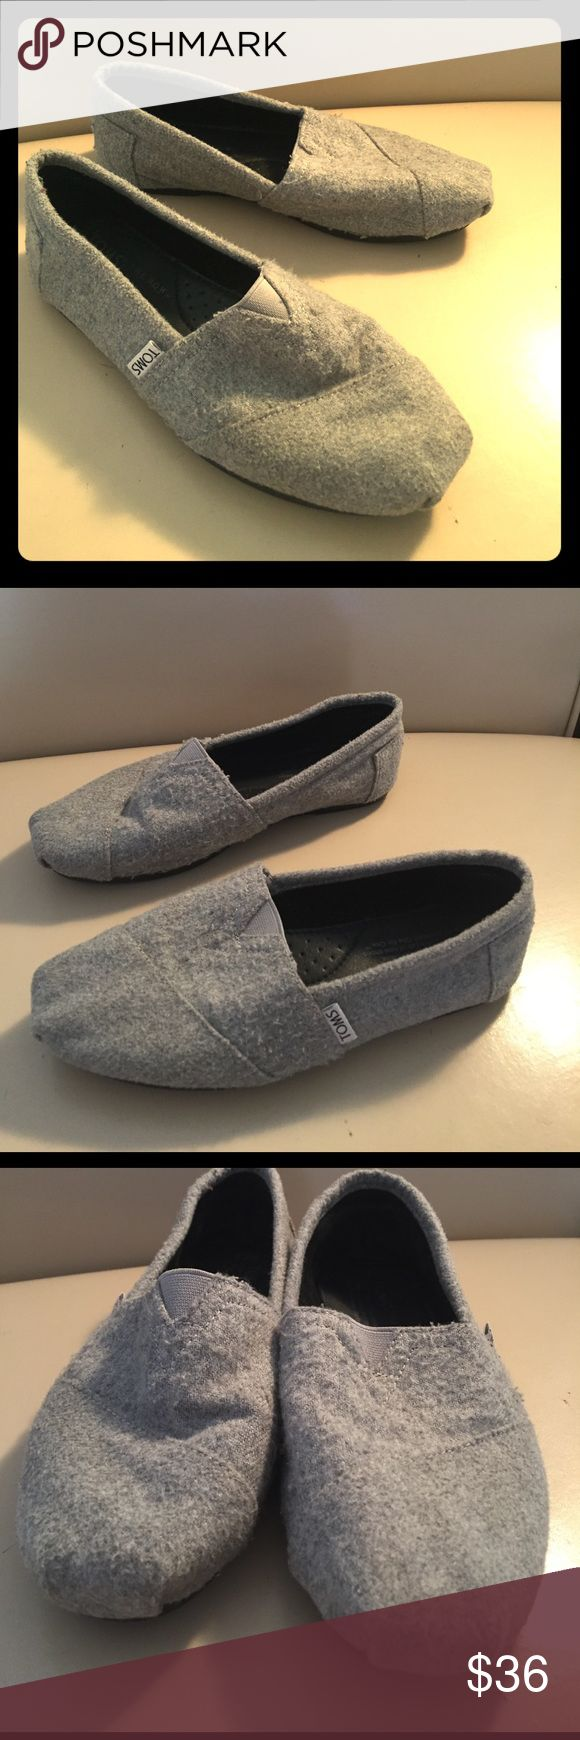 Gray TOMS Size 7.5 Gray TOMS in great condition! Minor wear shown in pictures. Comfy and cute shoes at an amazing price! TOMS Shoes Flats & Loafers